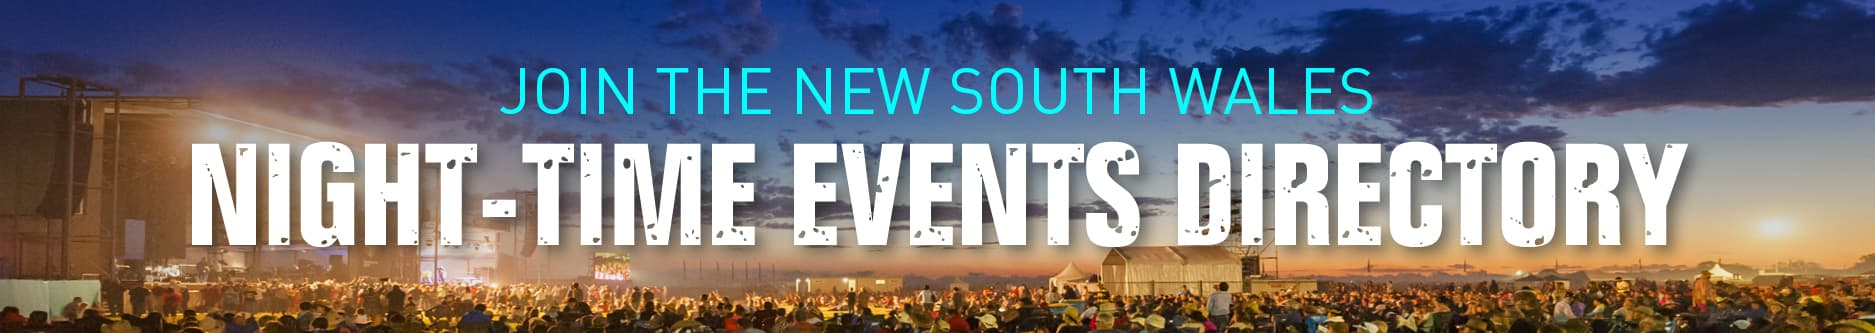 NSW Night time events